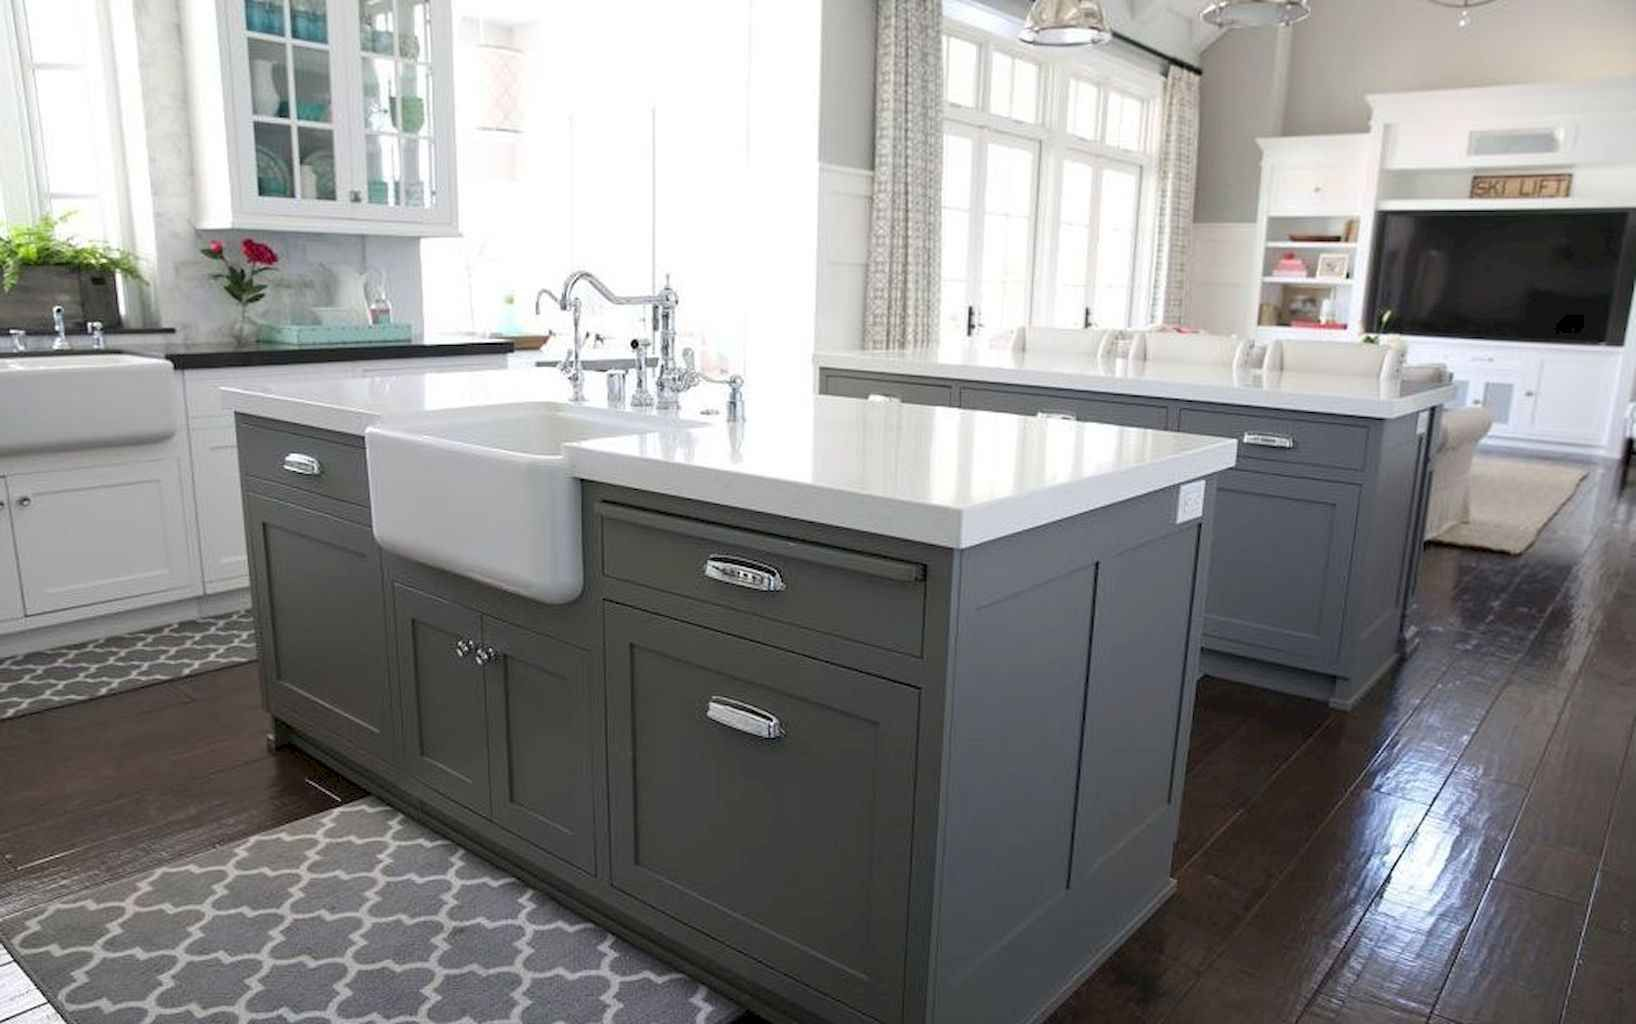 80 Beautiful Gray Kitchen Cabinet Design Ideas Spaciroom Com Grey Kitchen Island Grey Kitchen Cabinets Grey Kitchen